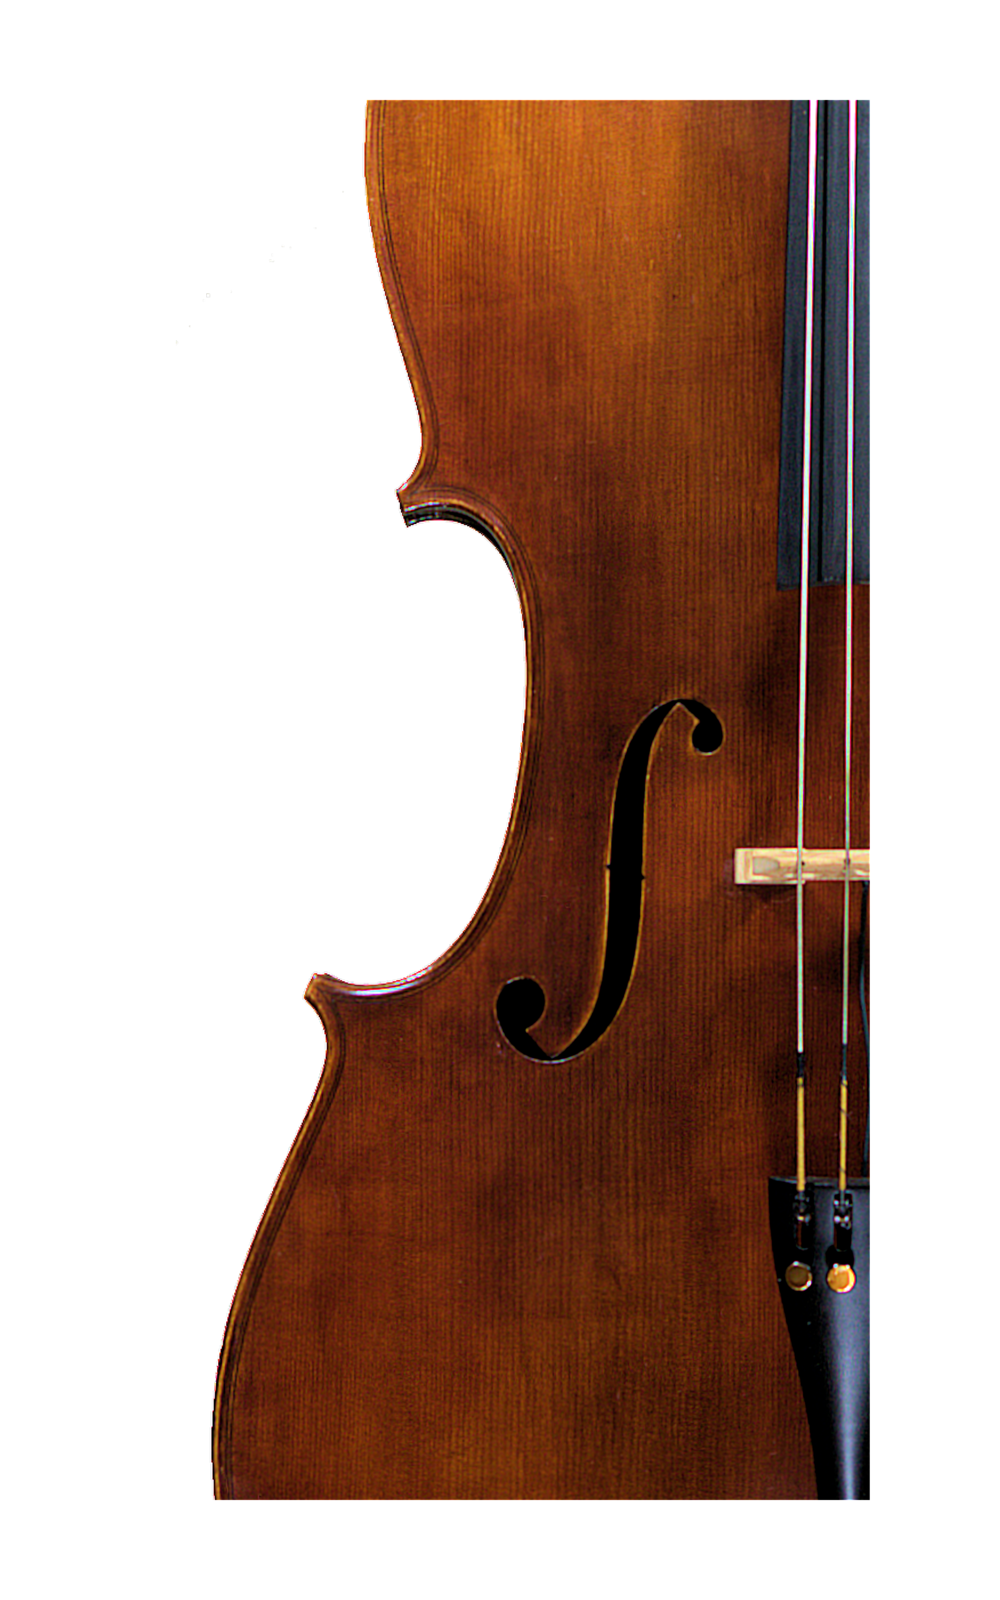 Cello_FHole.png